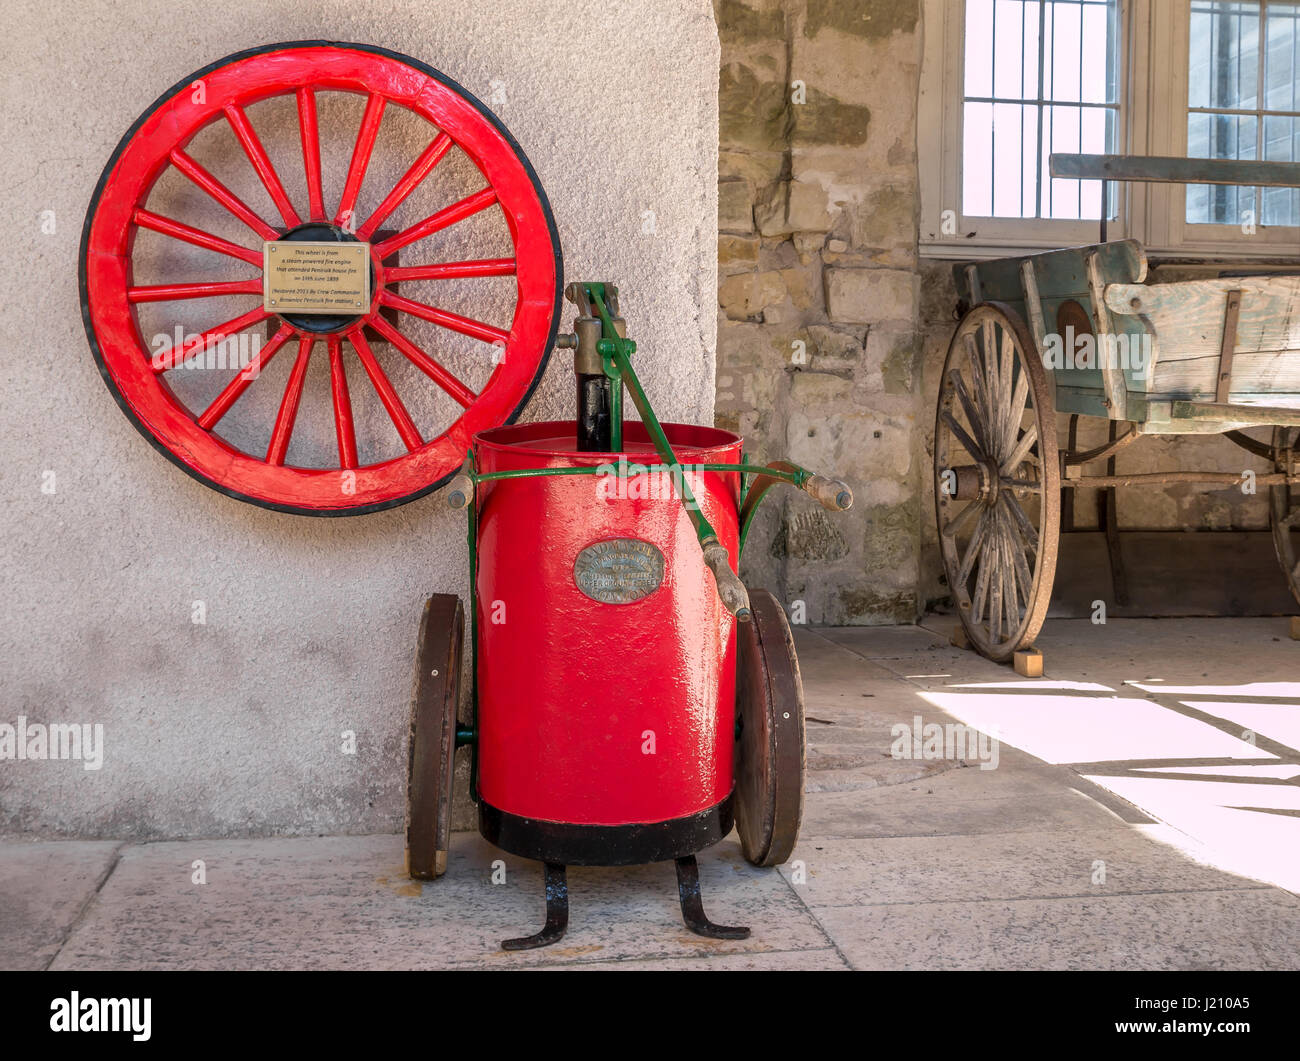 old water pump old steam stockfotos old water pump old steam bilder alamy. Black Bedroom Furniture Sets. Home Design Ideas